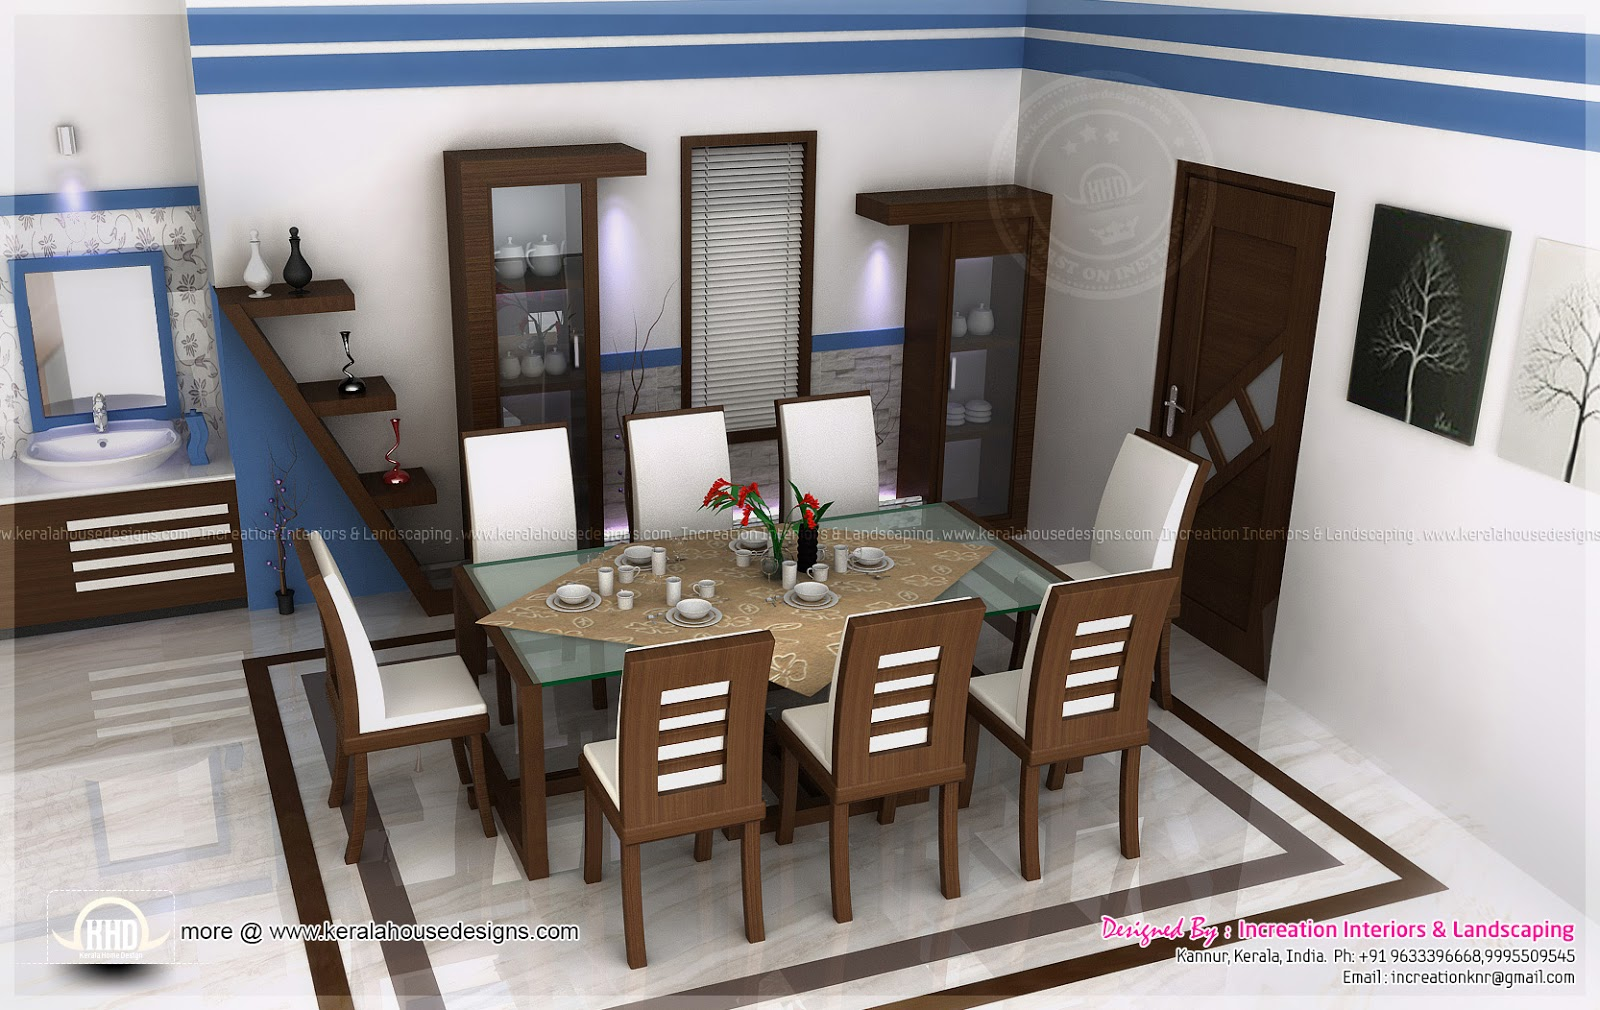 House interior ideas in 3d rendering kerala home design and floor plans Interior designing of your home